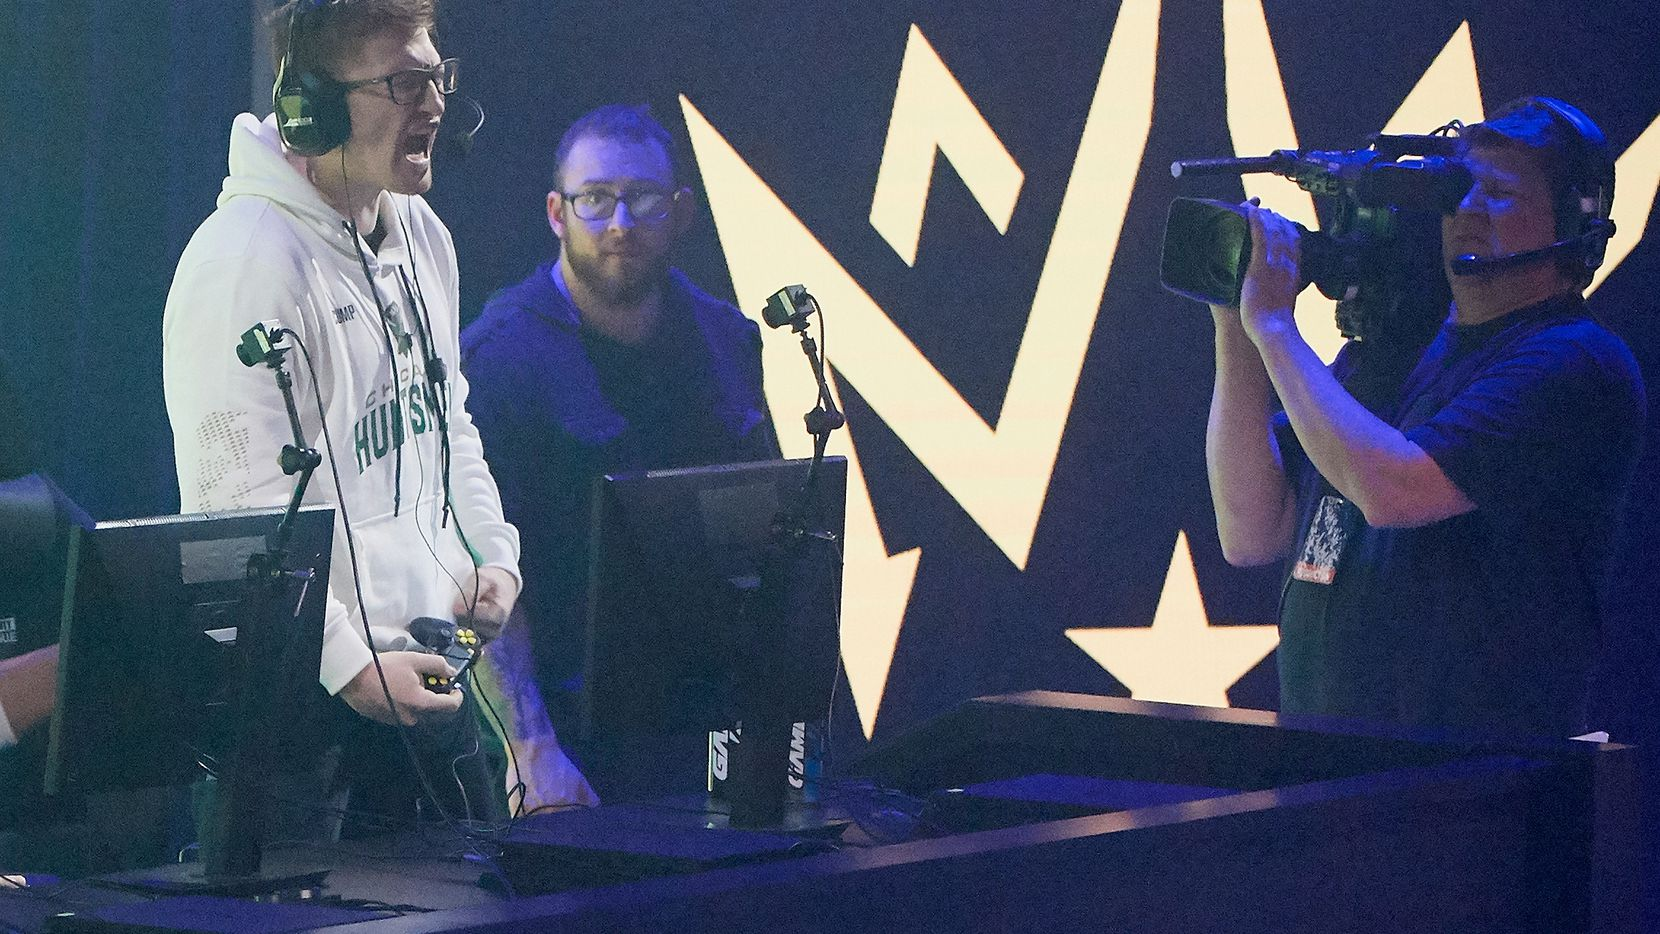 """MINNEAPOLIS, MINNESOTA - JANUARY 24: Seth """"Scump"""" Abner of the Chicago Huntsmen celebrates after taking a game against the Dallas Empire during day one of the Call of Duty League launch weekend at The Armory on January 24, 2020 in Minneapolis, Minnesota. (Photo by Hannah Foslien/Getty Images)"""